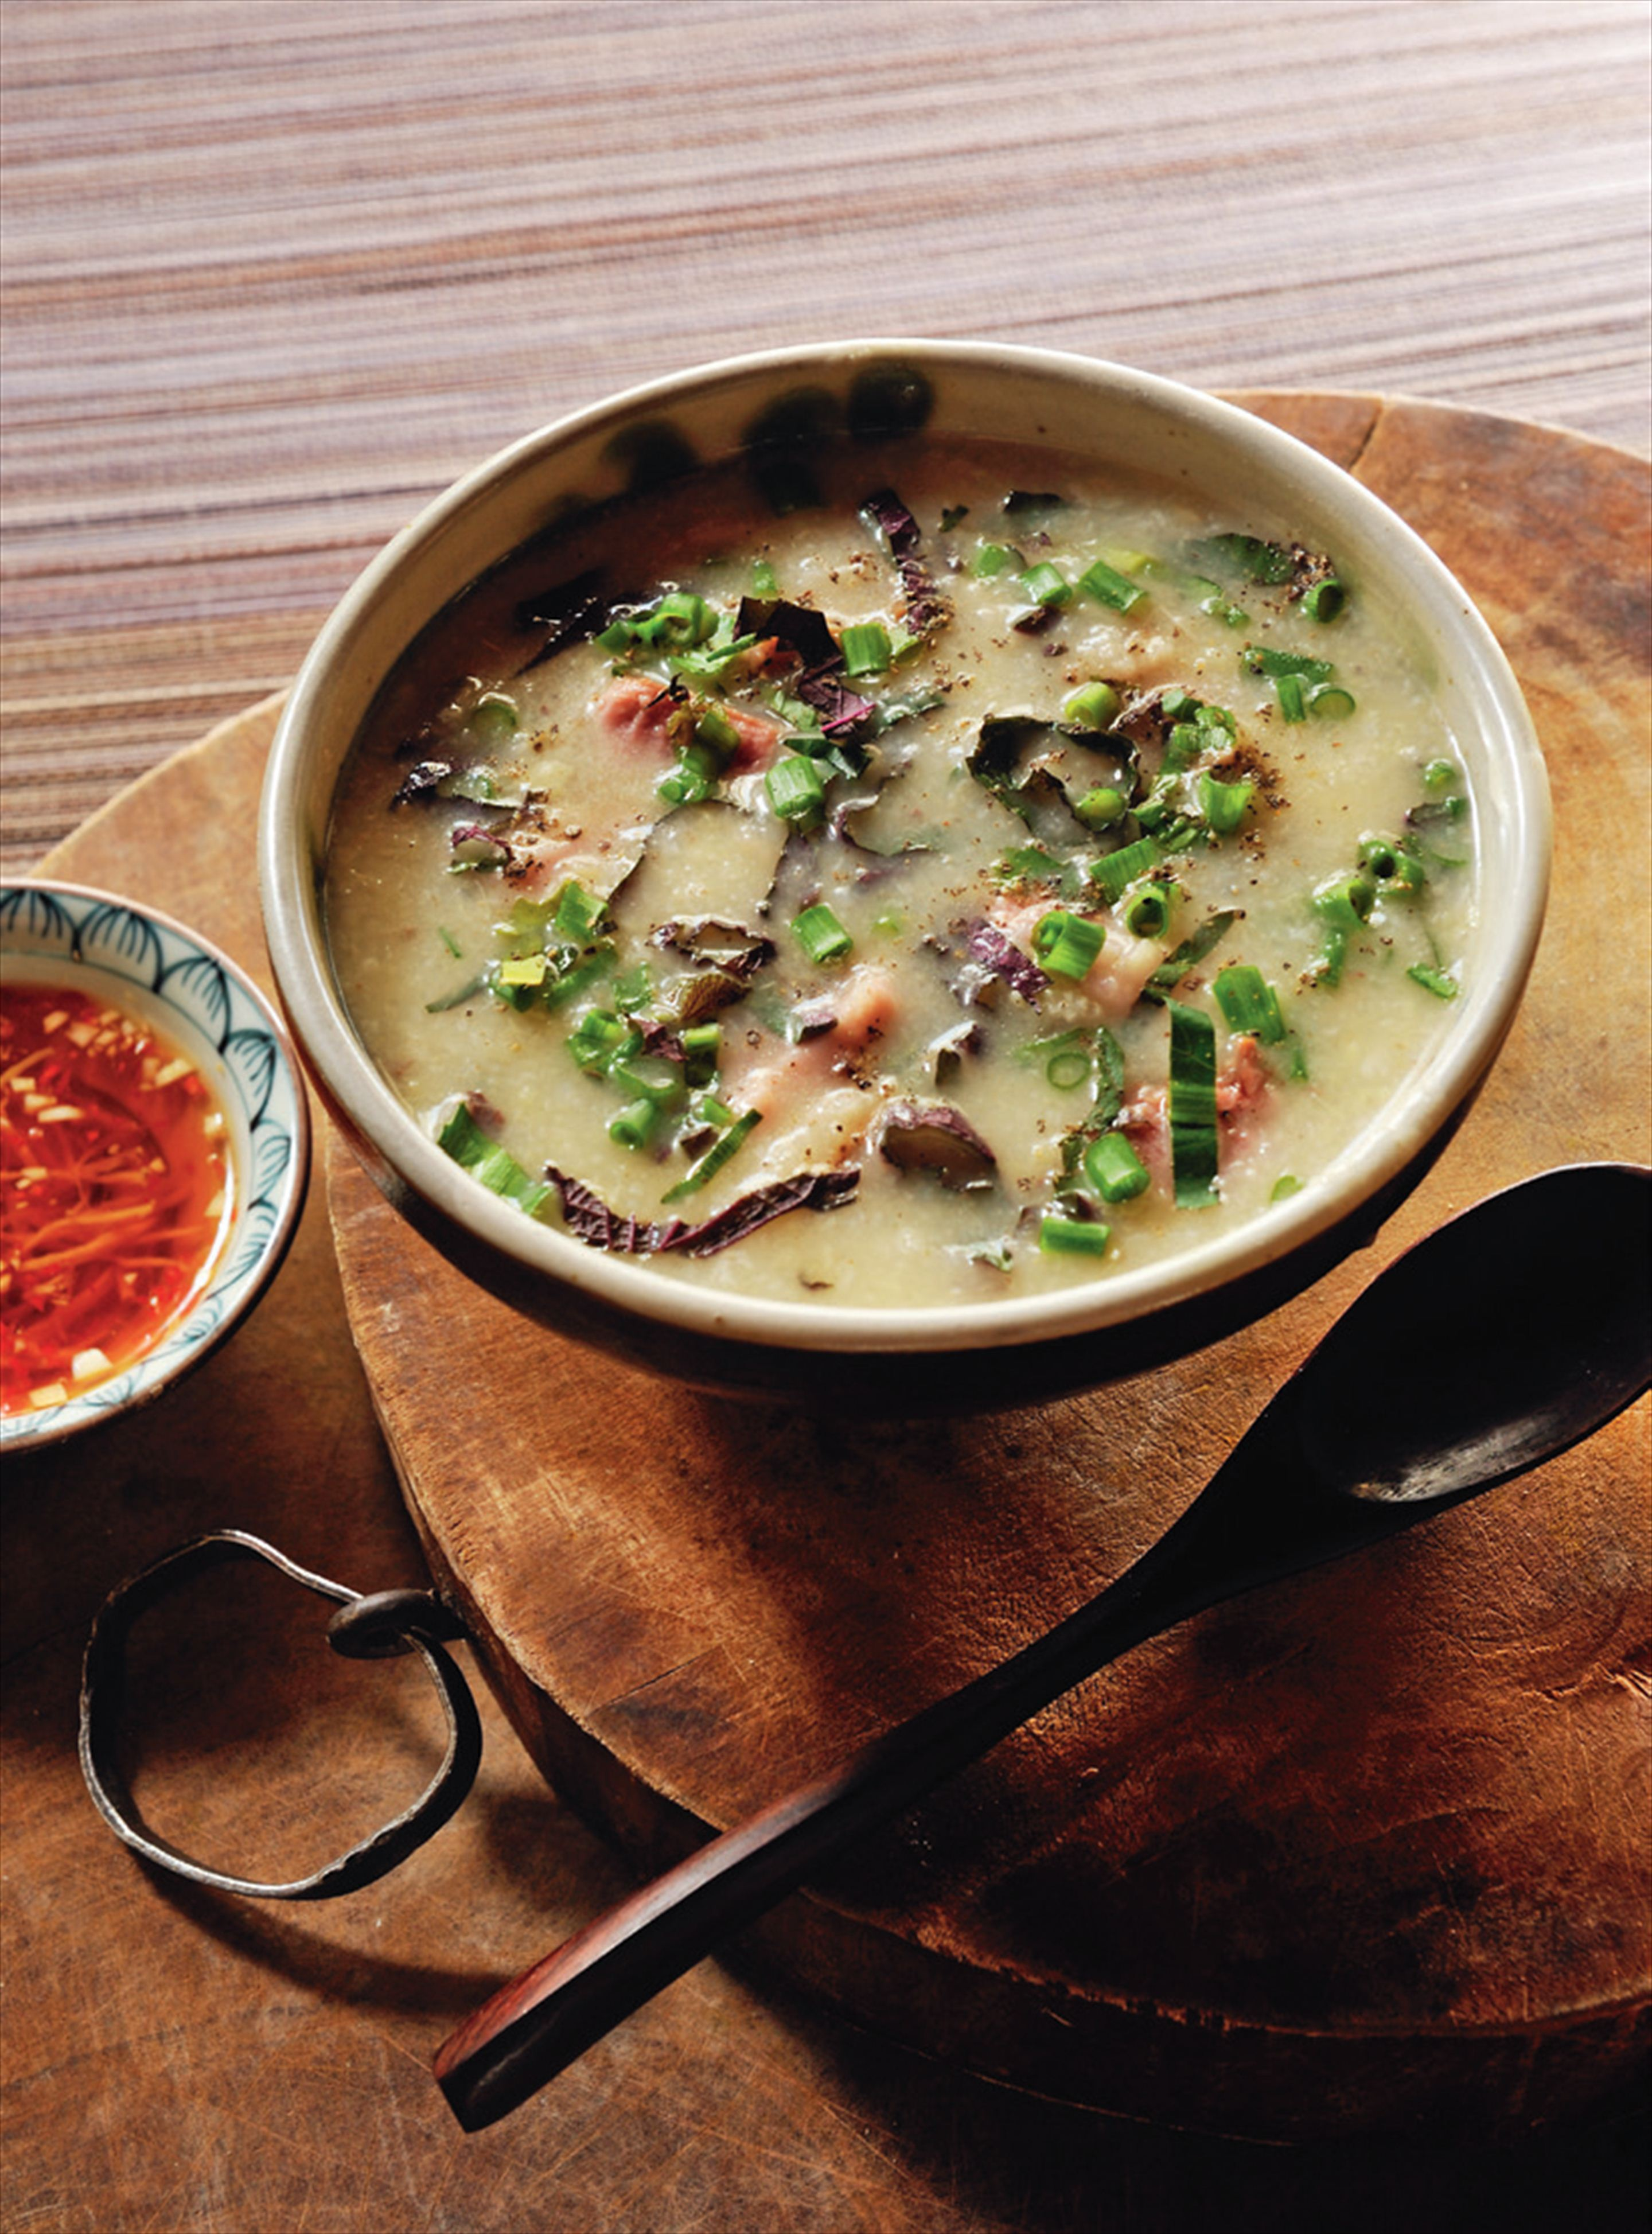 Duck rice porridge